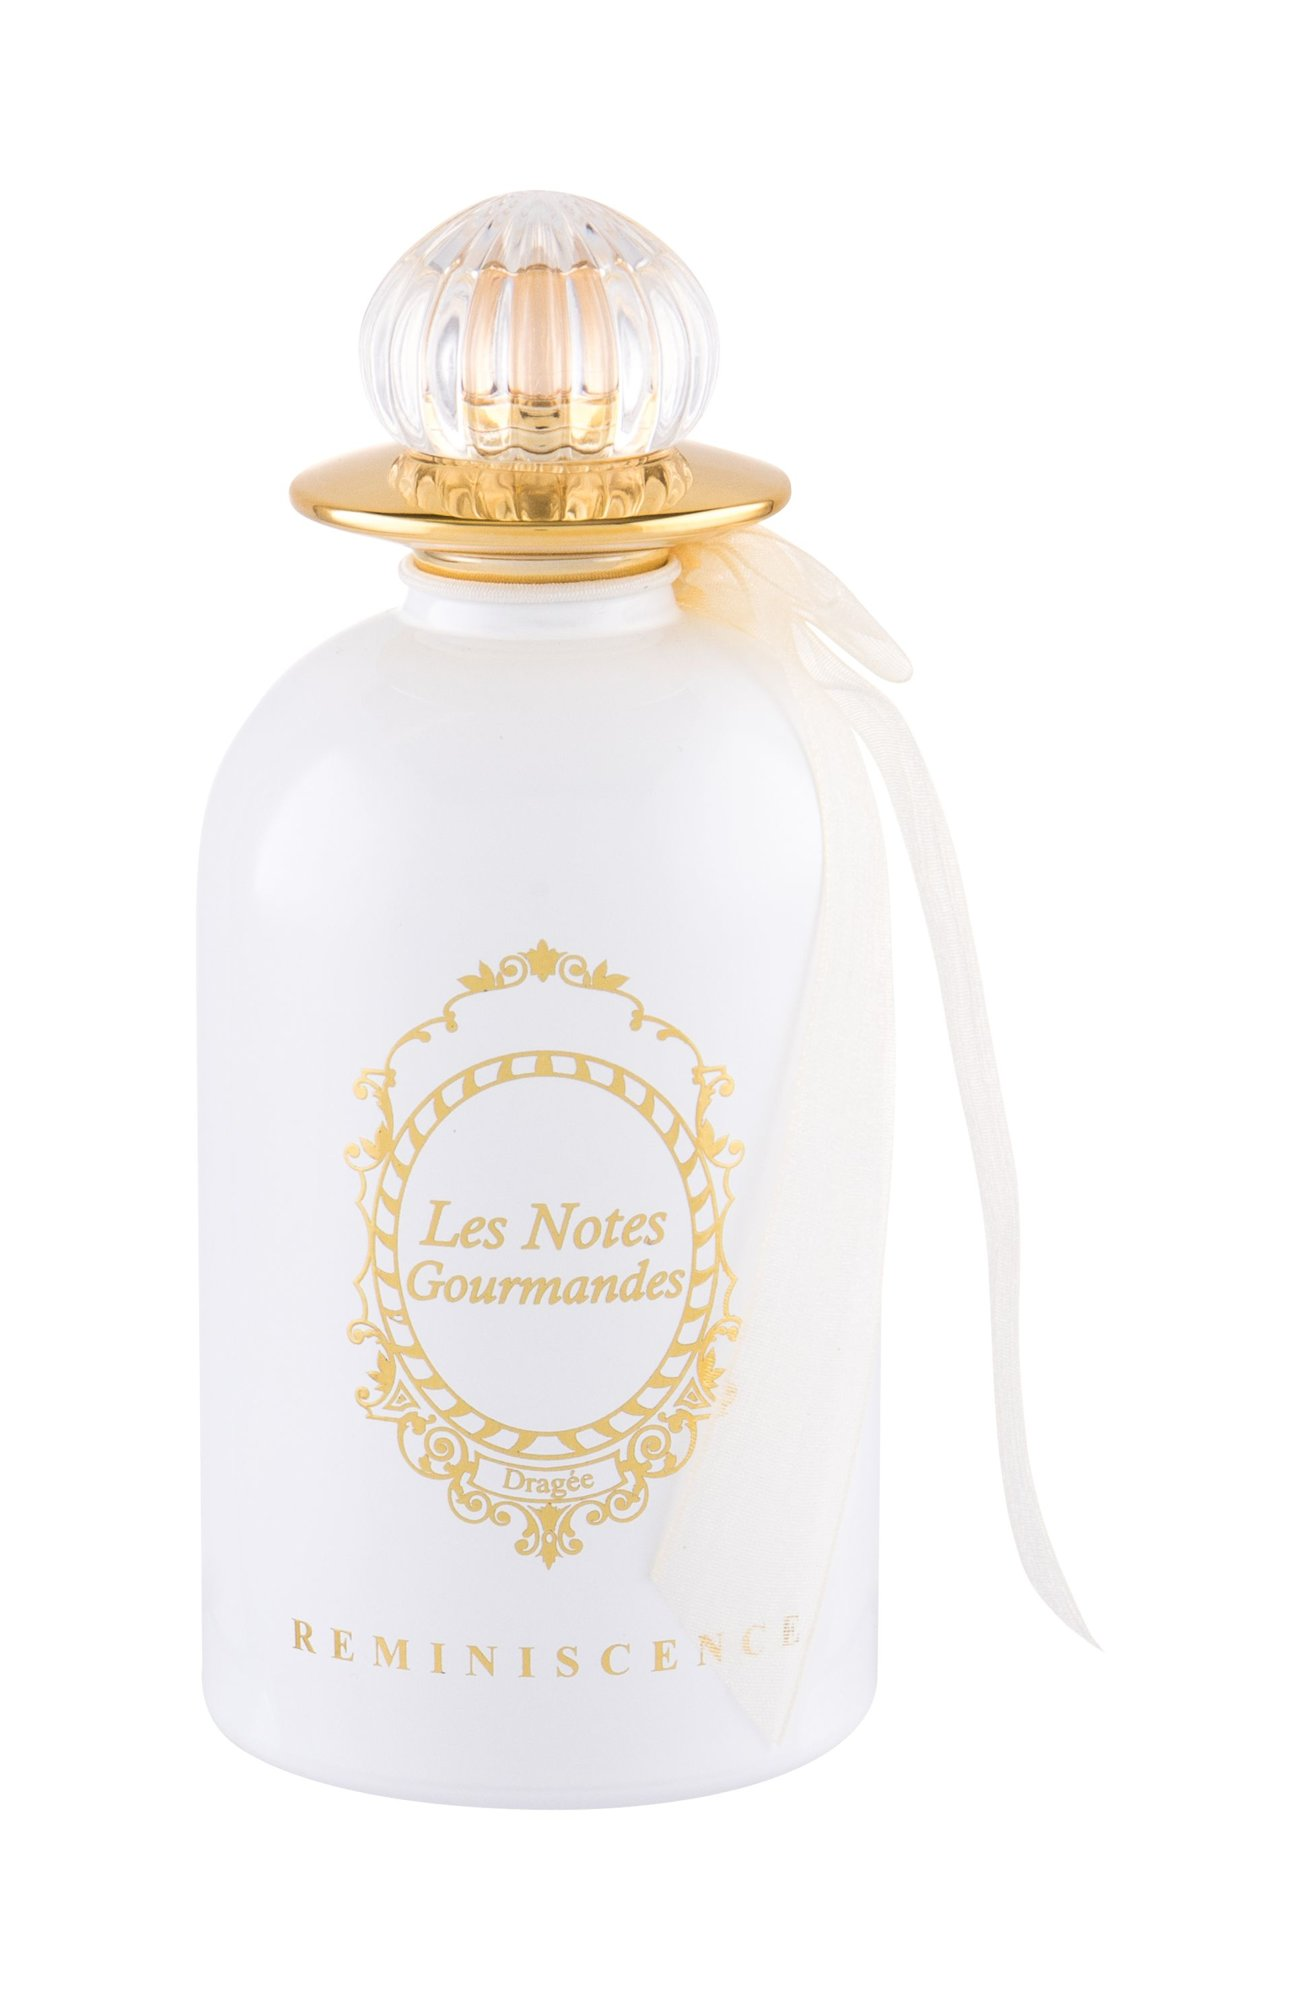 Reminiscence Les Notes Gourmandes Dragée, edp 100ml